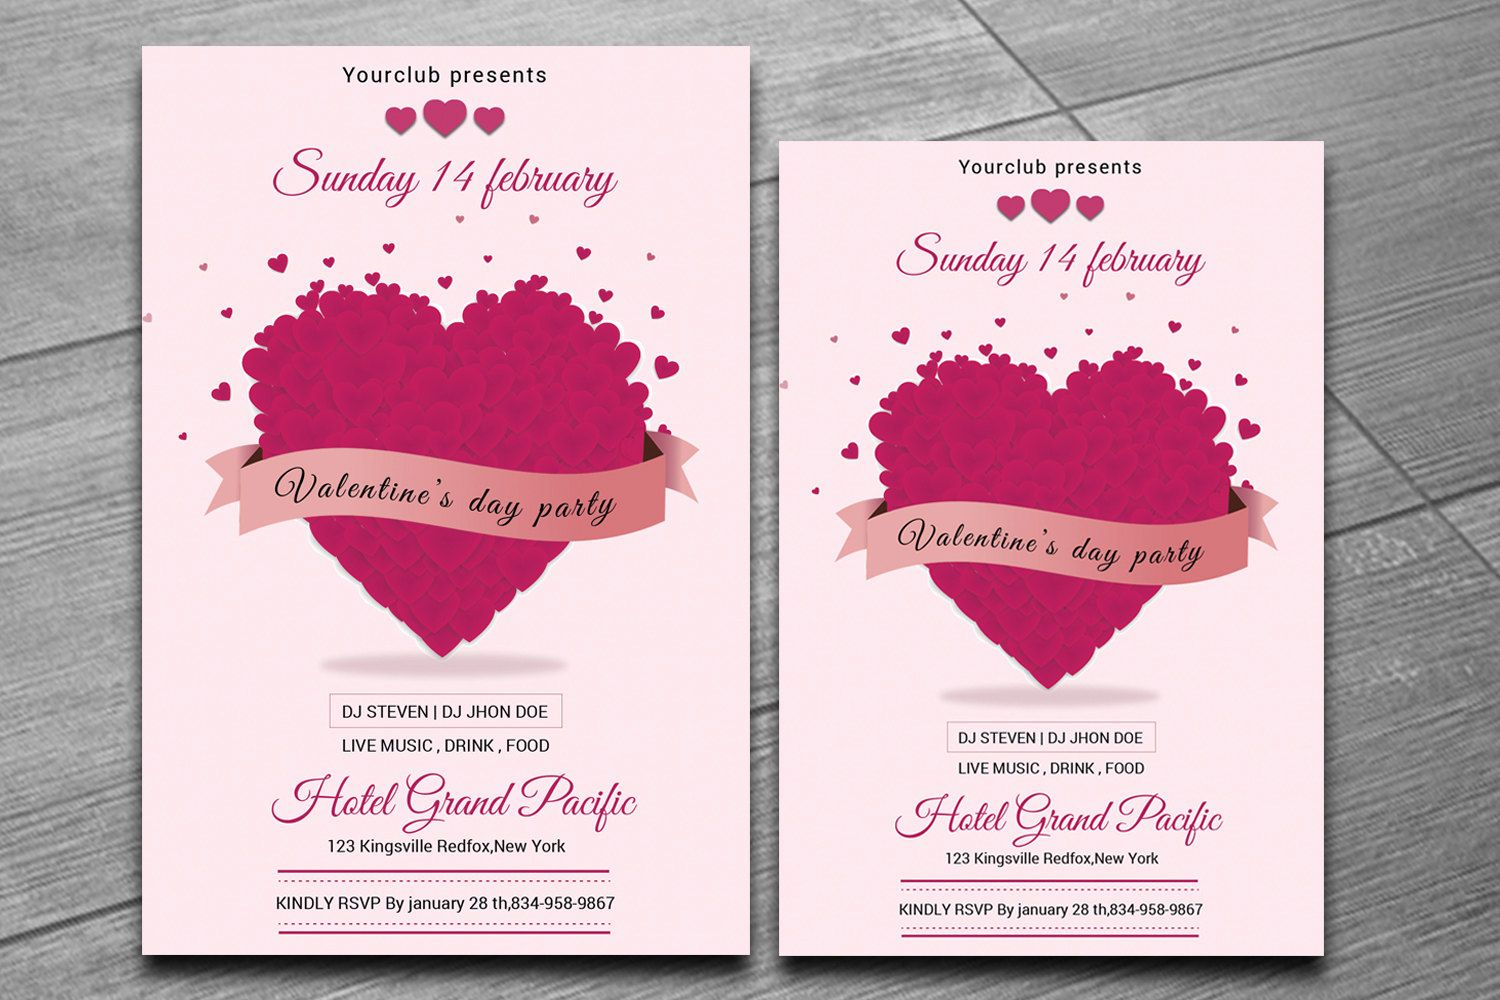 Valentines Day Party invitation Template | Valentines Day Party ...